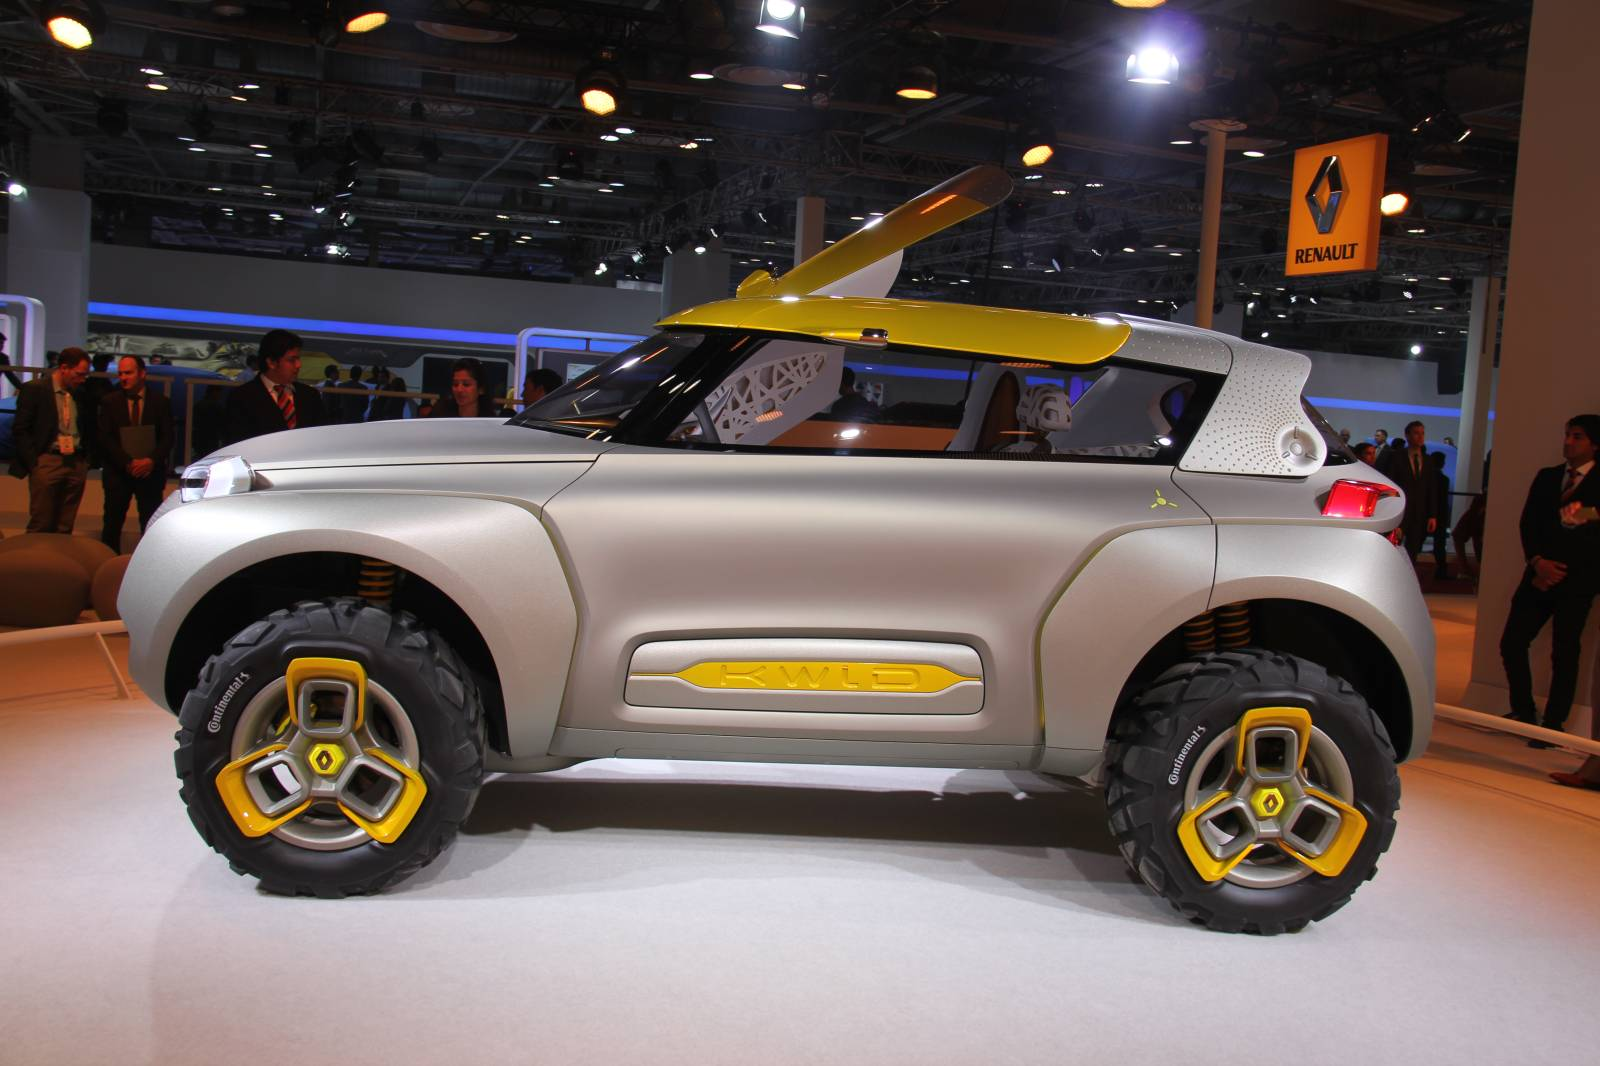 The KWID Concept Could Become Renault's Next Crossover in 2016 - autoevolution